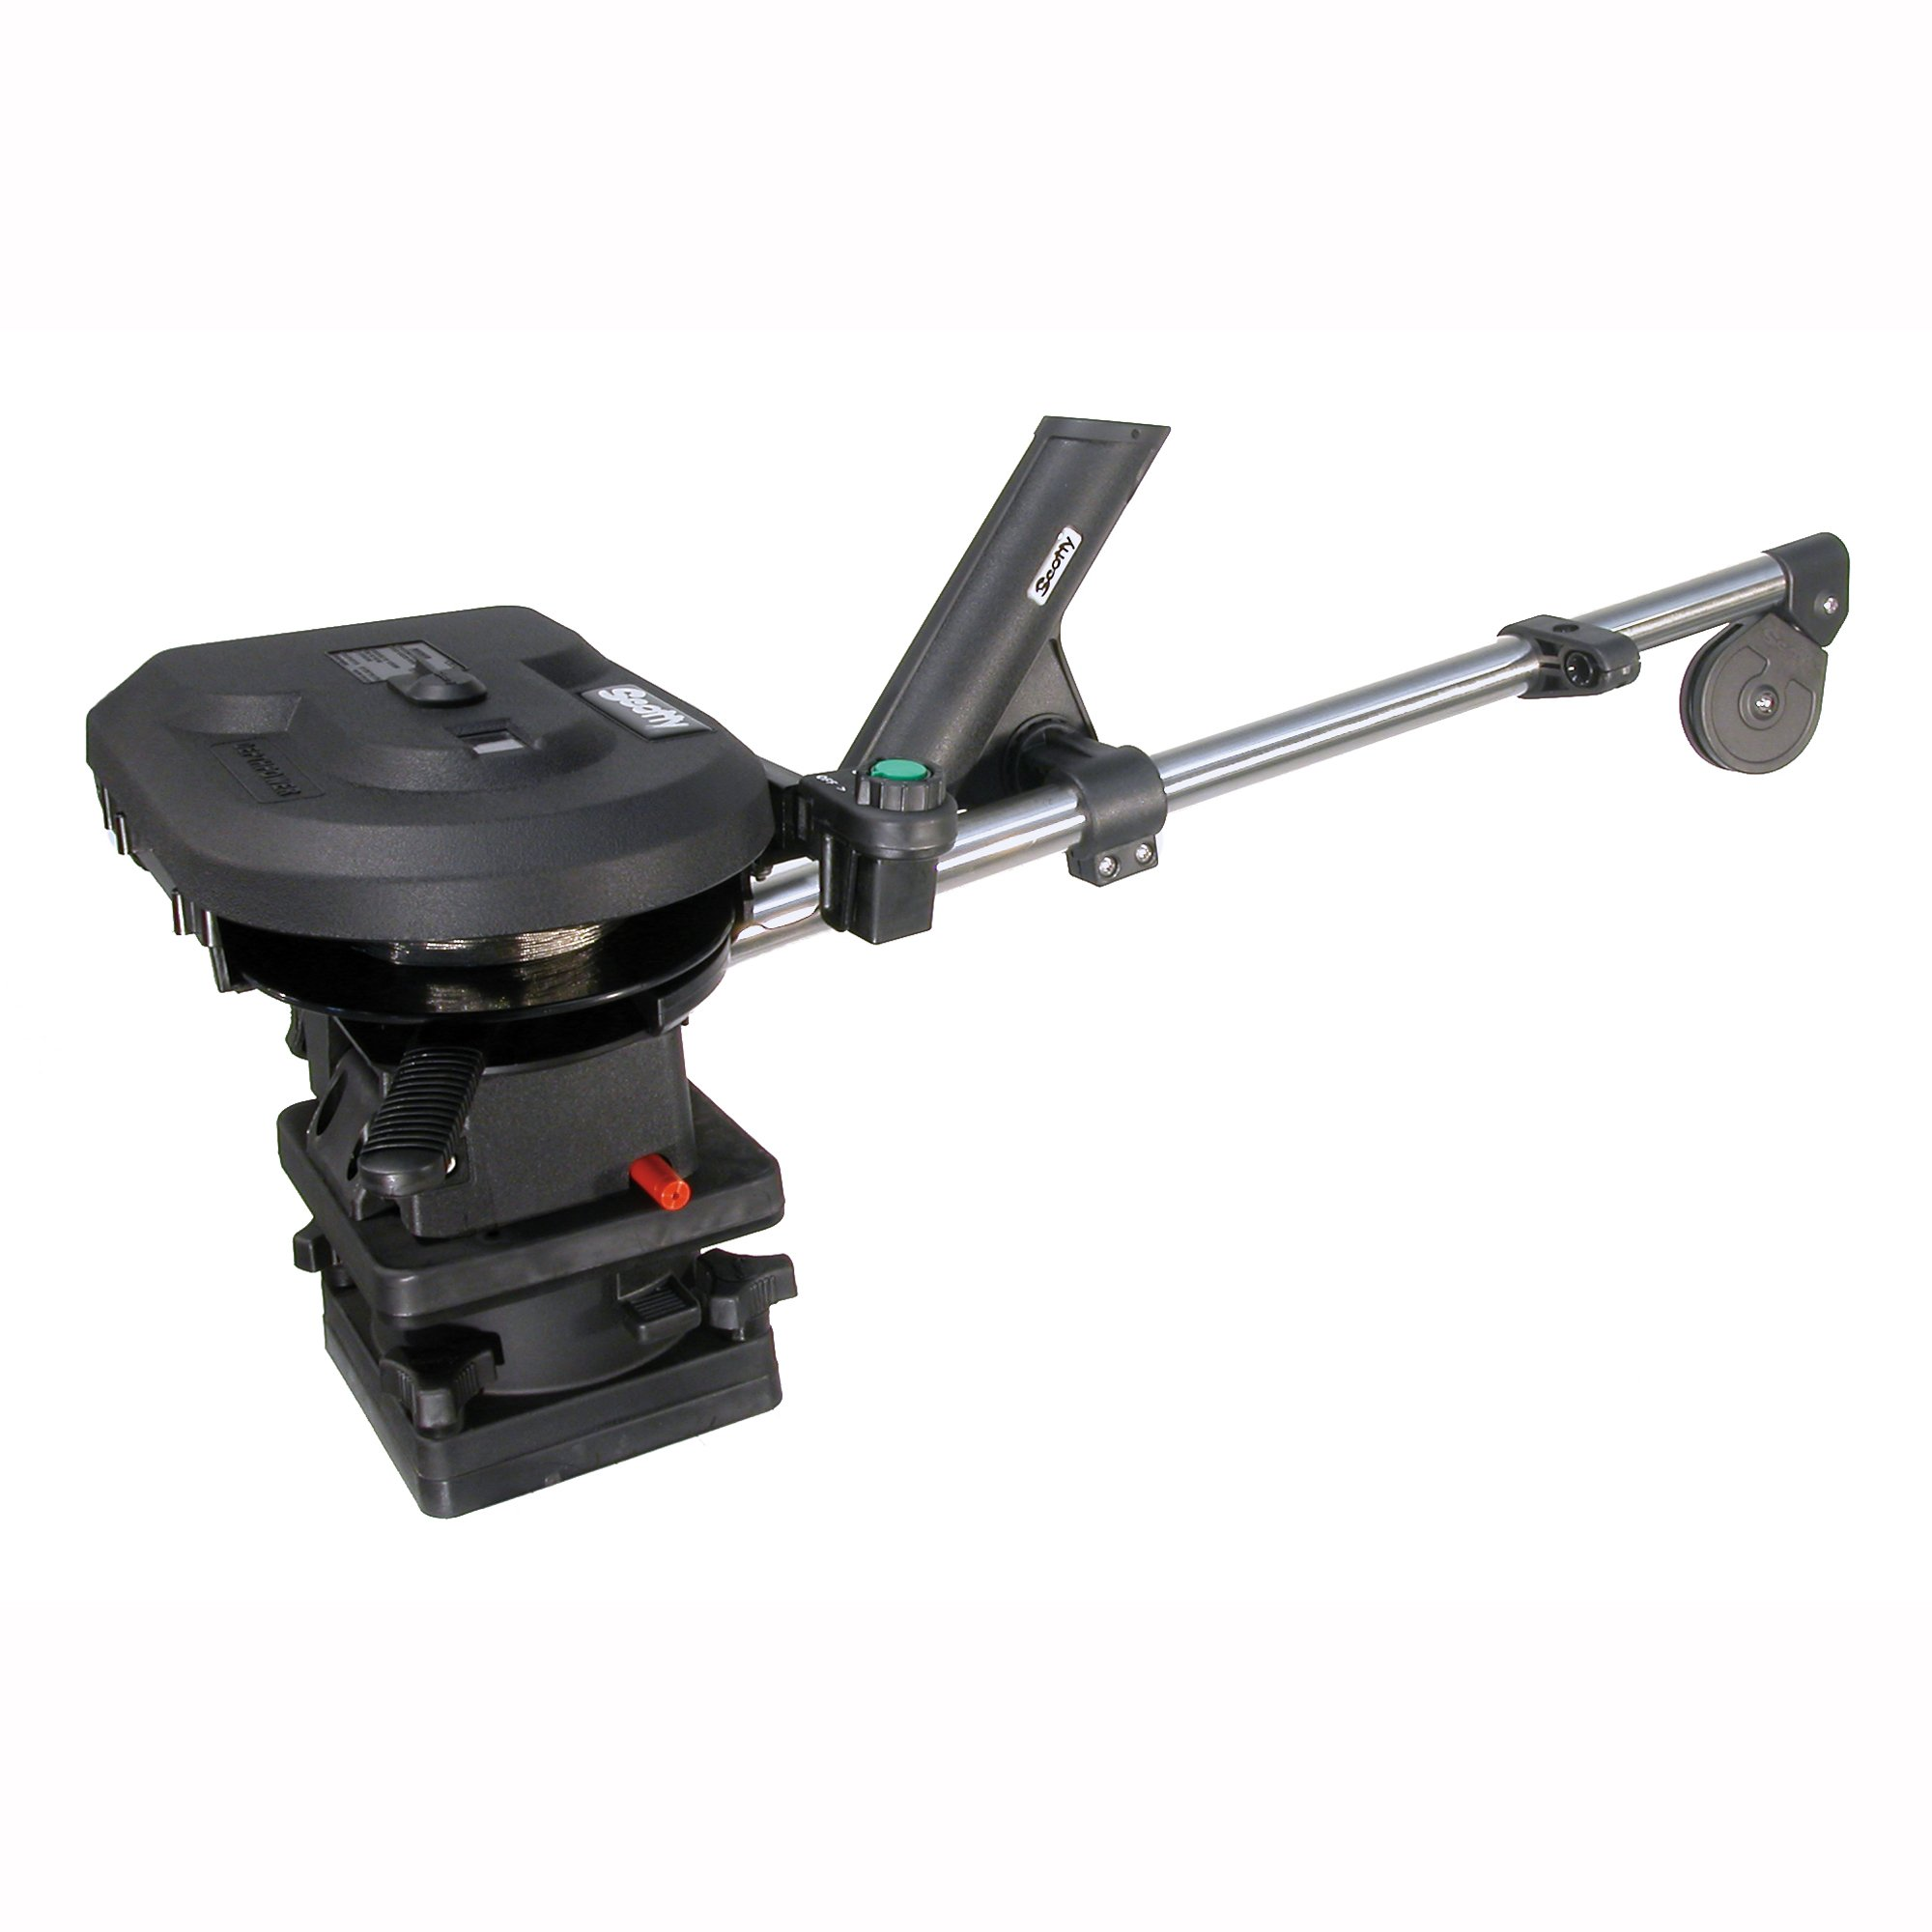 Scotty #1101 Depthpower Electric Downrigger w/ 30-Inch Solid Boom & Swivel Base, Rod Holder by Scotty